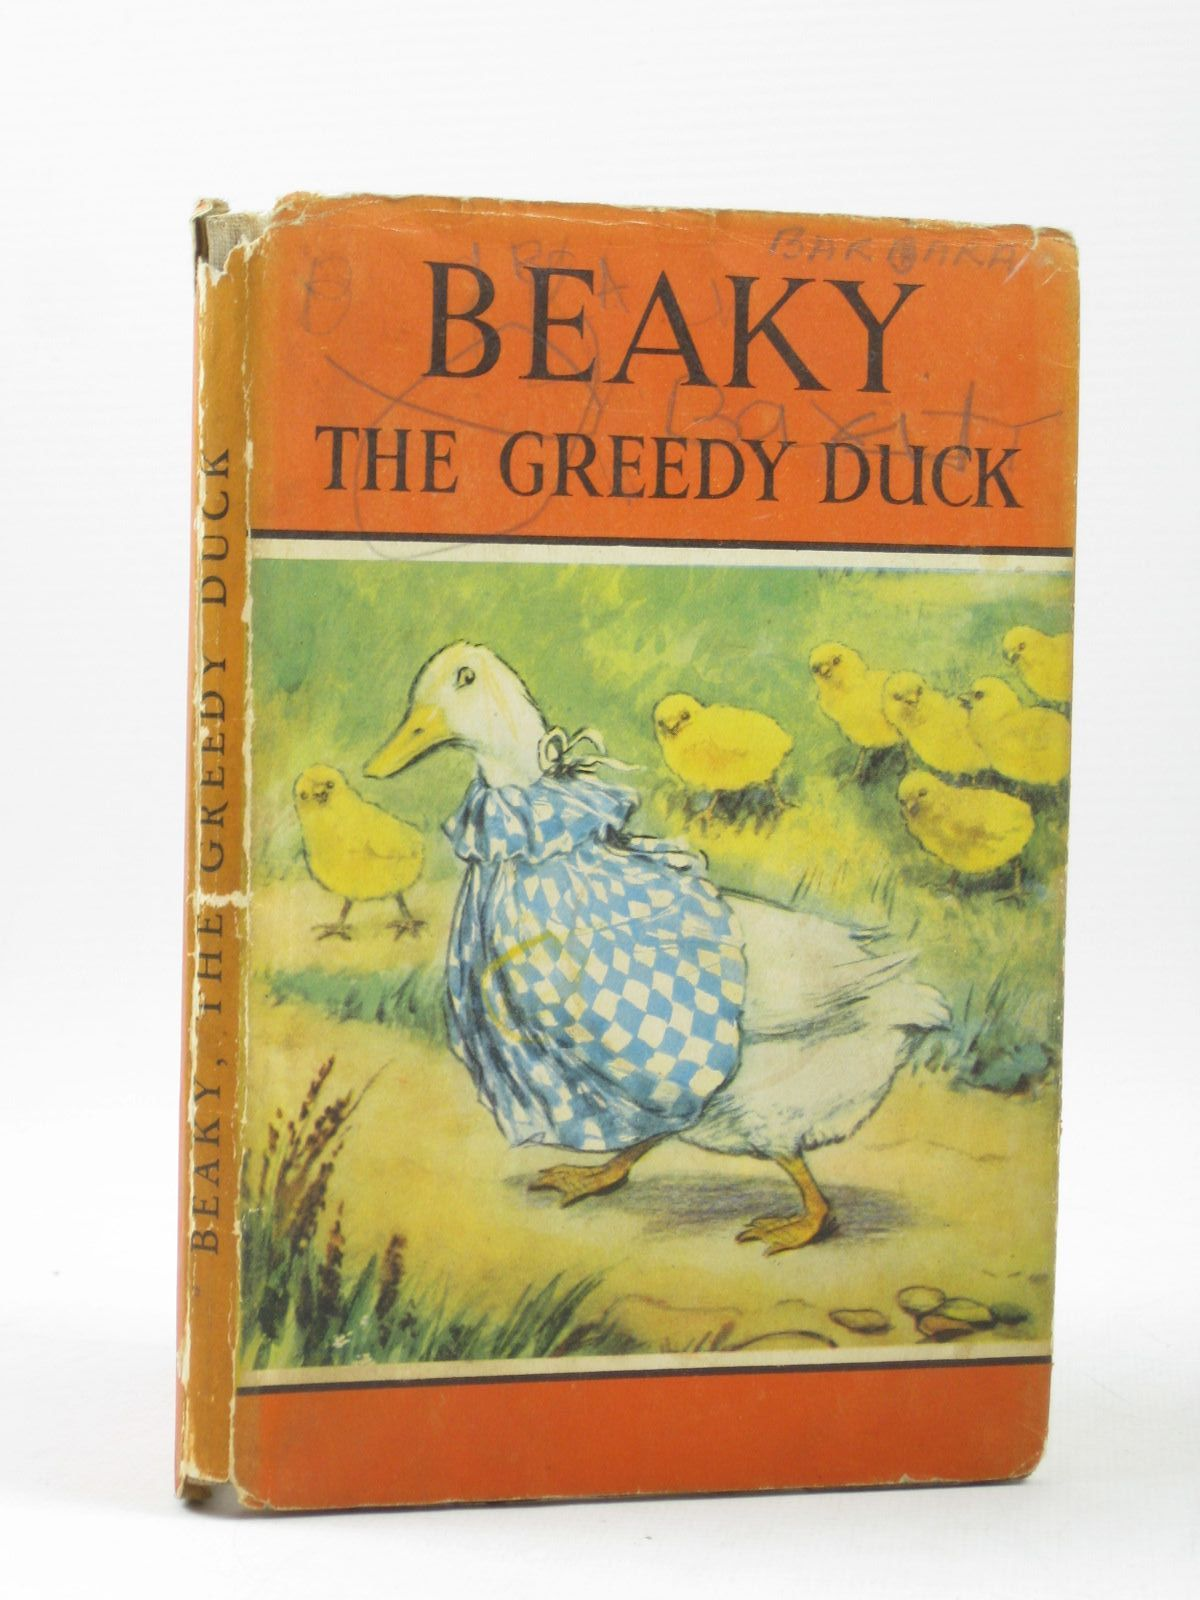 Photo of BEAKY THE GREEDY DUCK written by Barr, Noel illustrated by Hickling, P.B. published by Wills & Hepworth Ltd. (STOCK CODE: 1503953)  for sale by Stella & Rose's Books